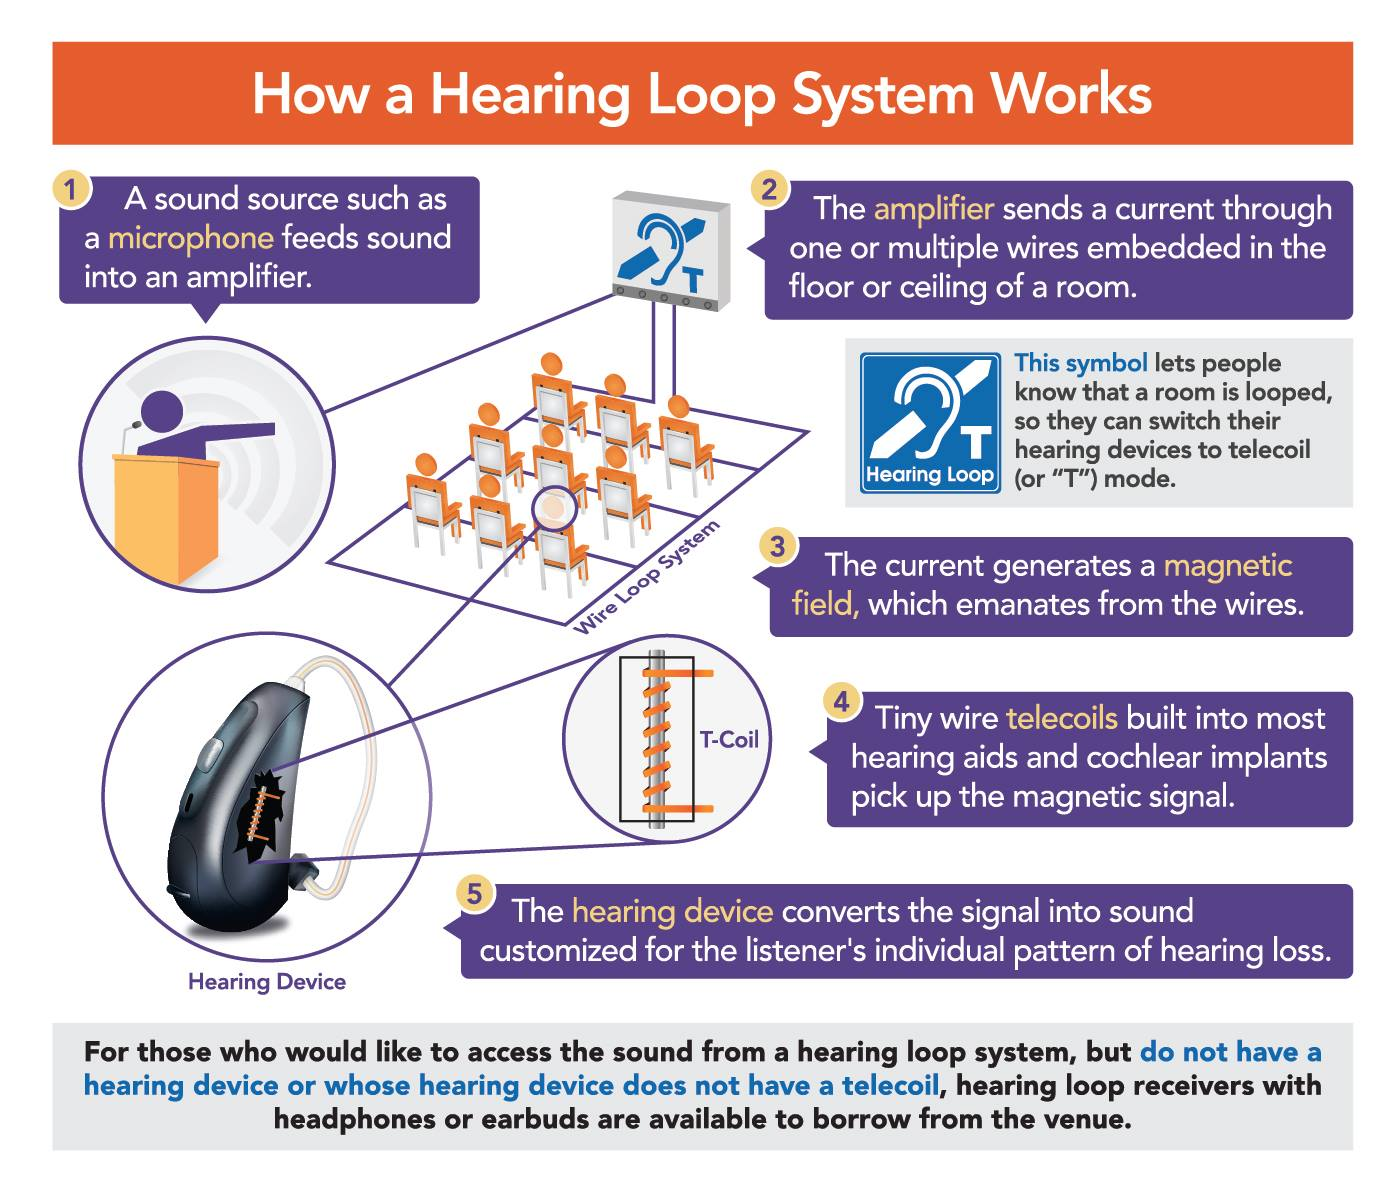 Graphic showing how a hearing loop works. 1 - A sound source such as a microphone feeds sound into an amplifier, 2 - The amplifier sends a current through one or multiple wires embedded in the floor or ceiling of a room, 3 - The current generates a magnetic field, which emanates from the loop., 4 - Tiny wire t-coils built into the hearing aids pick up the magnetic signal, 5 - The hearing aid converts the signal into sound customized for the listener's individual pattern of hearing loss.